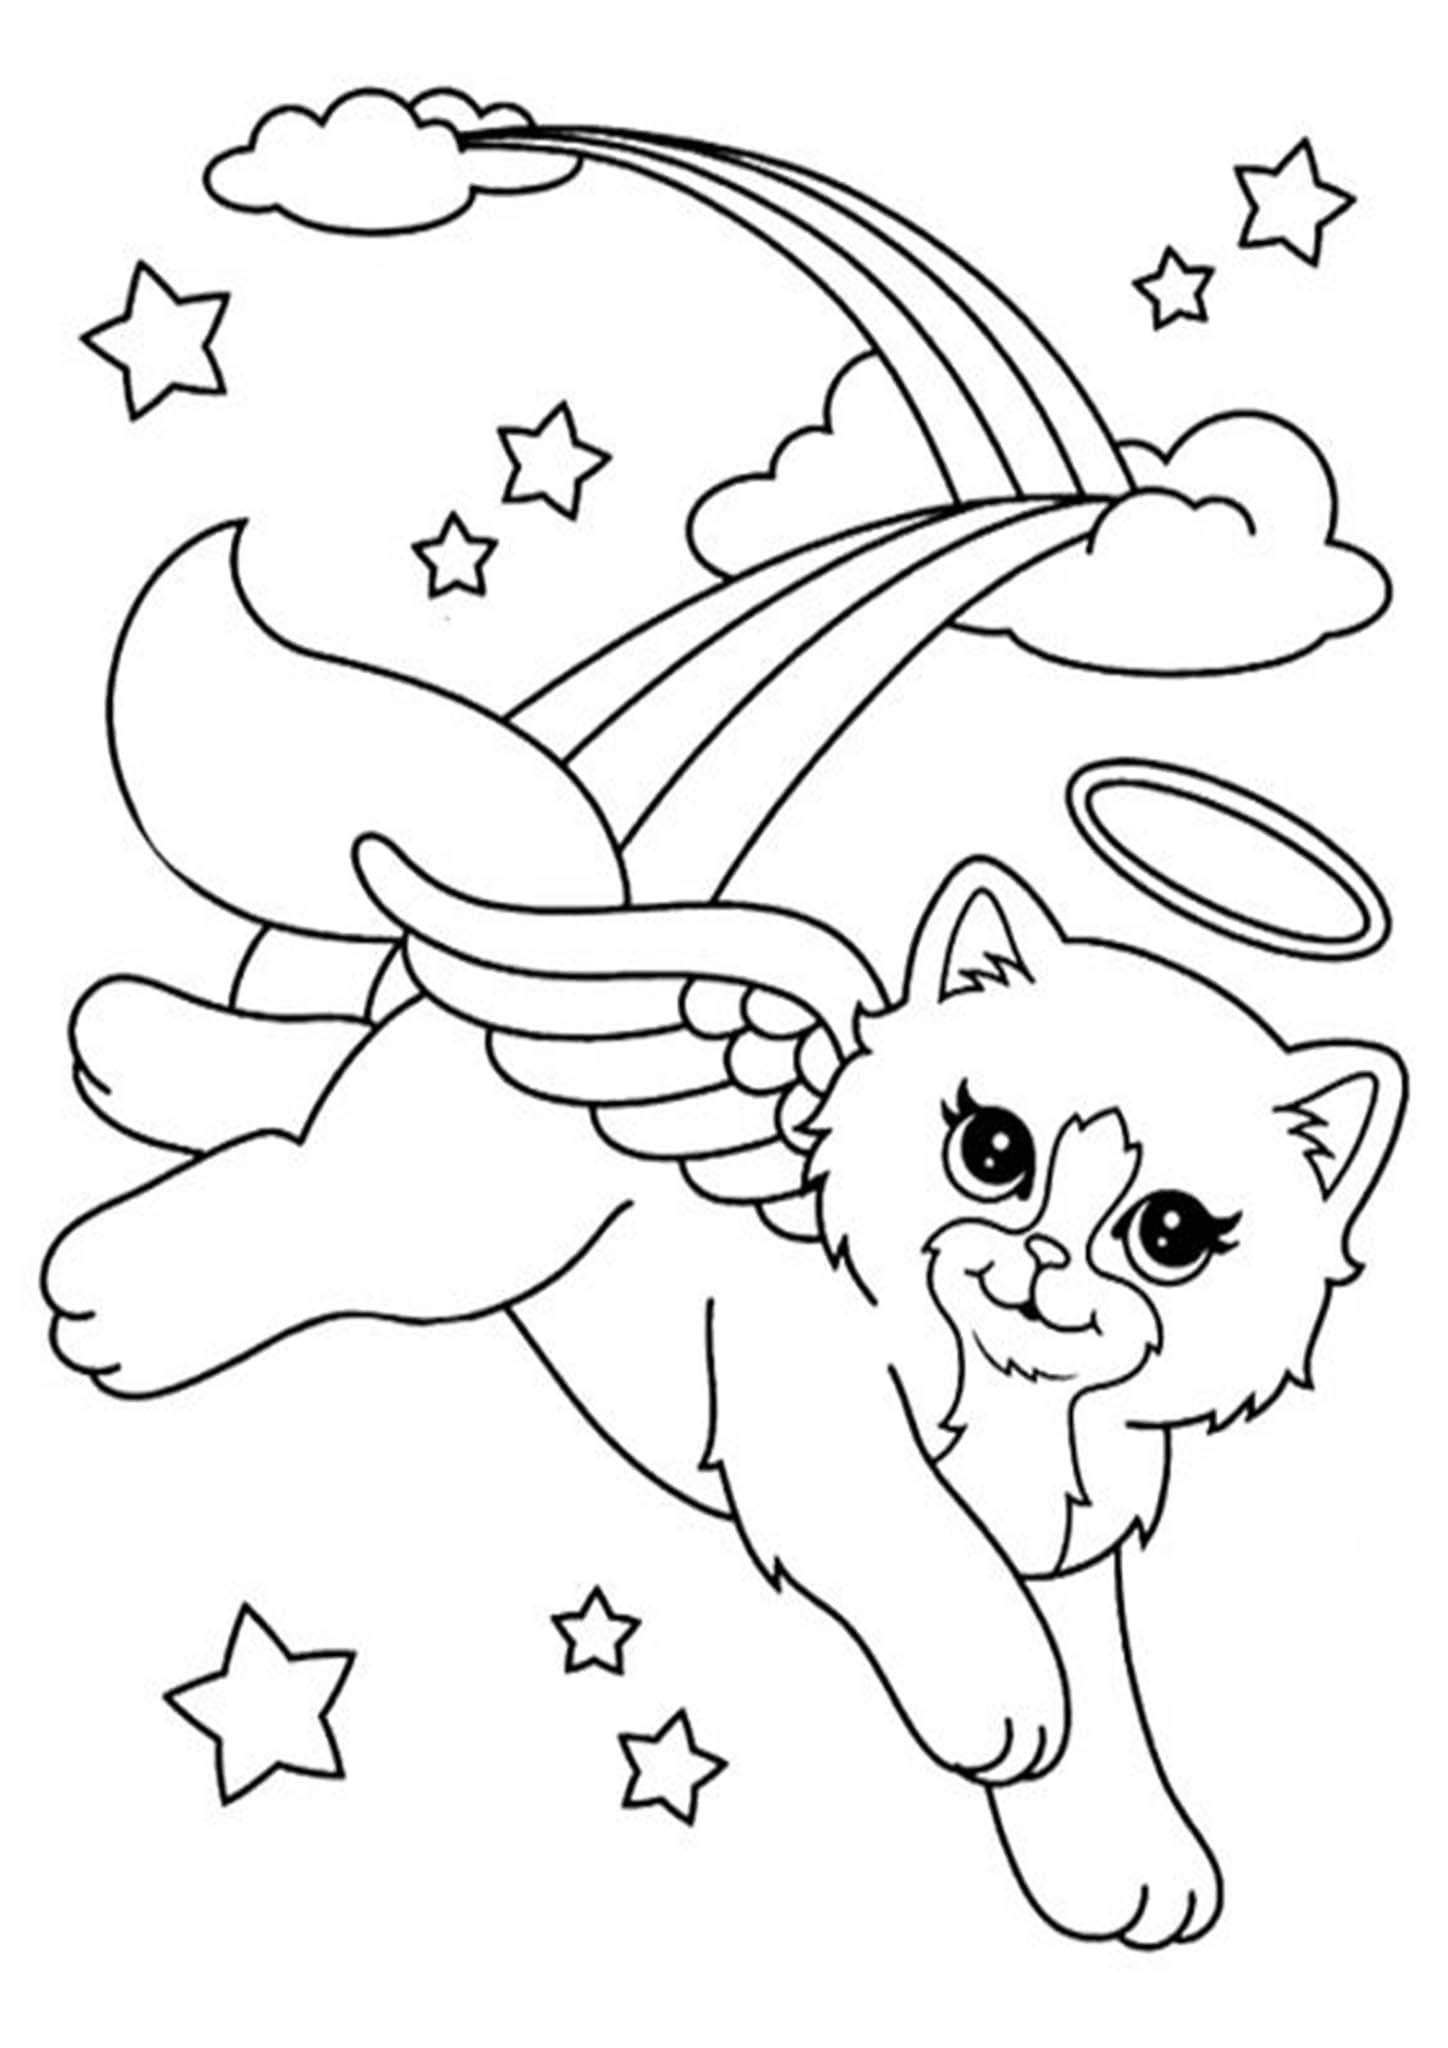 Free Easy To Print Rainbow Coloring Pages Unicorn Coloring Pages Cat Coloring Page Angel Coloring Pages